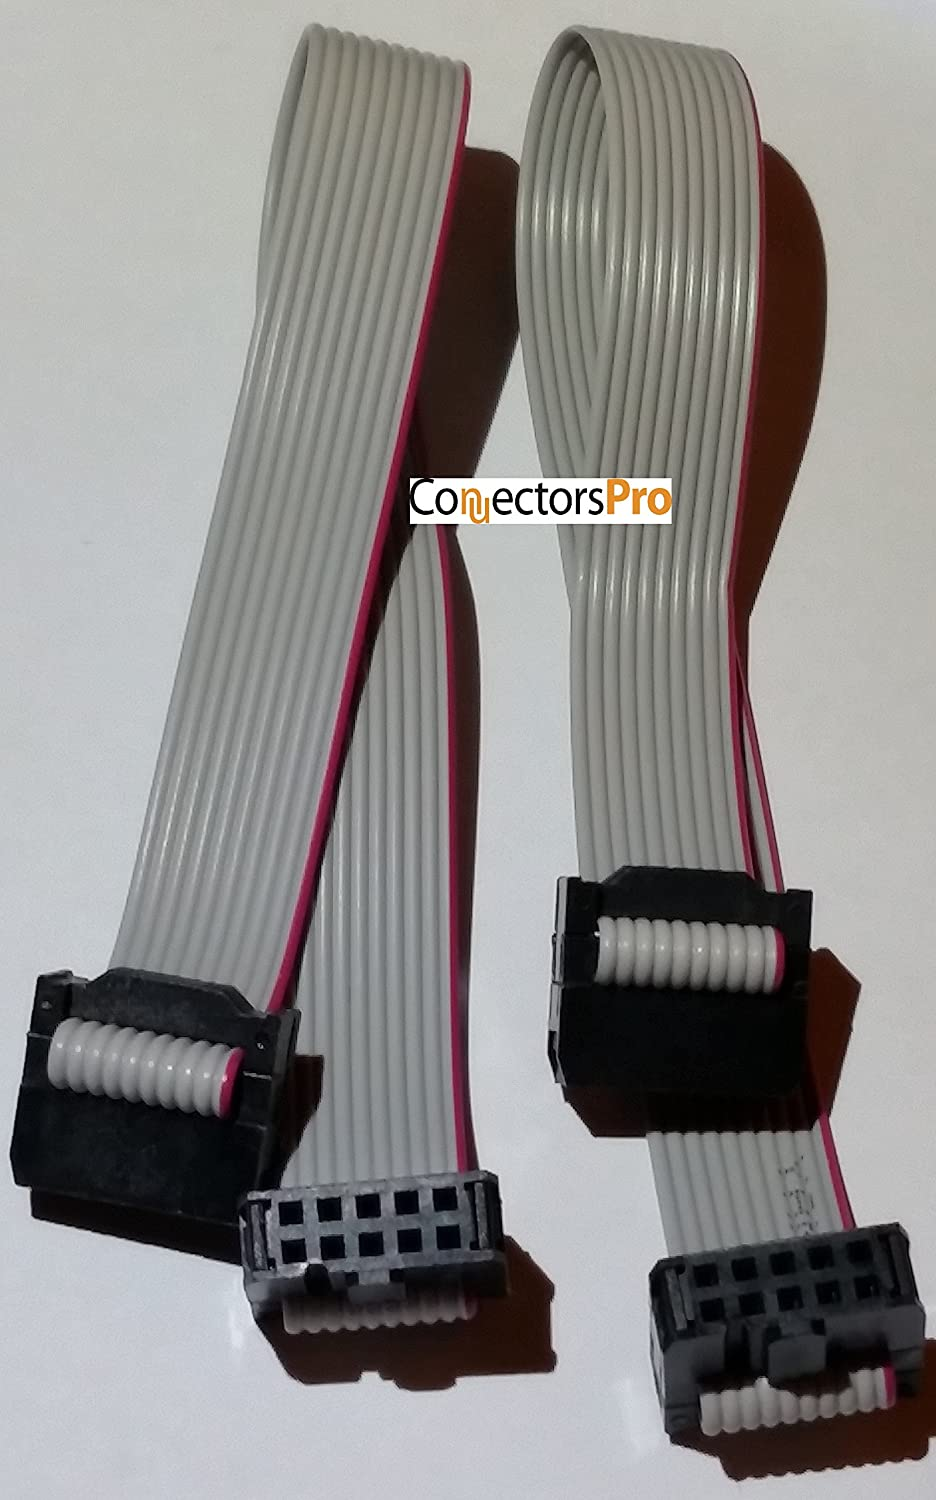 """Connectors Pro IDC 2-Pack 20cm 8"""" Length 10 Pins 1.27mm 0.05"""" Pitch Silver Flat Ribbon Cable with Black 10P 2.54mm FC Dual Row Female to Female Sockets, Net Length is 7 inches 18cm (10P-20cm-2PK)"""